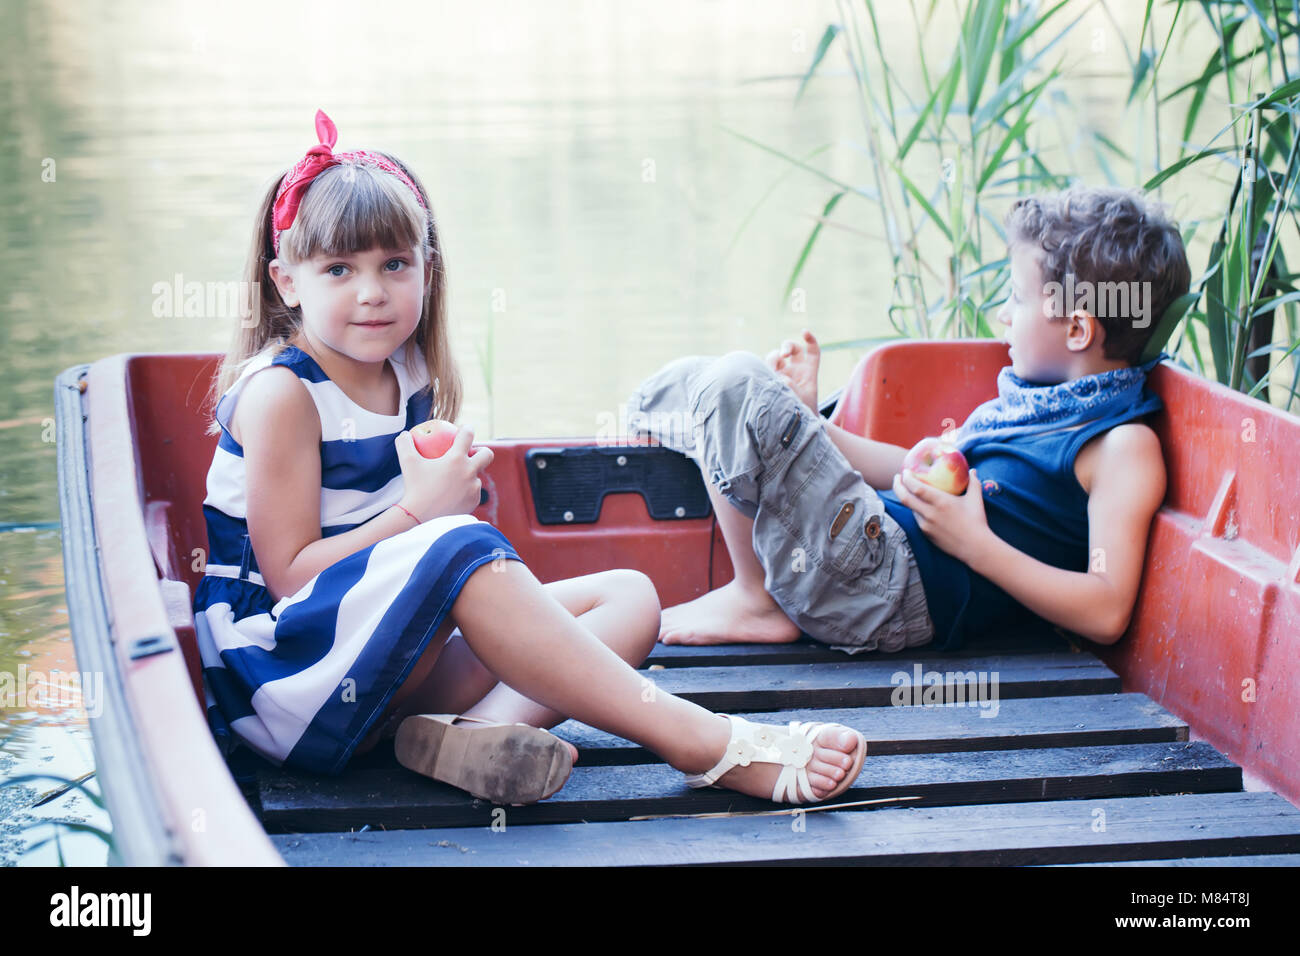 Family and friends summer vacation. Children ride on a boat outdoors. Boy with a girl riding on a boat on the lake - Stock Image